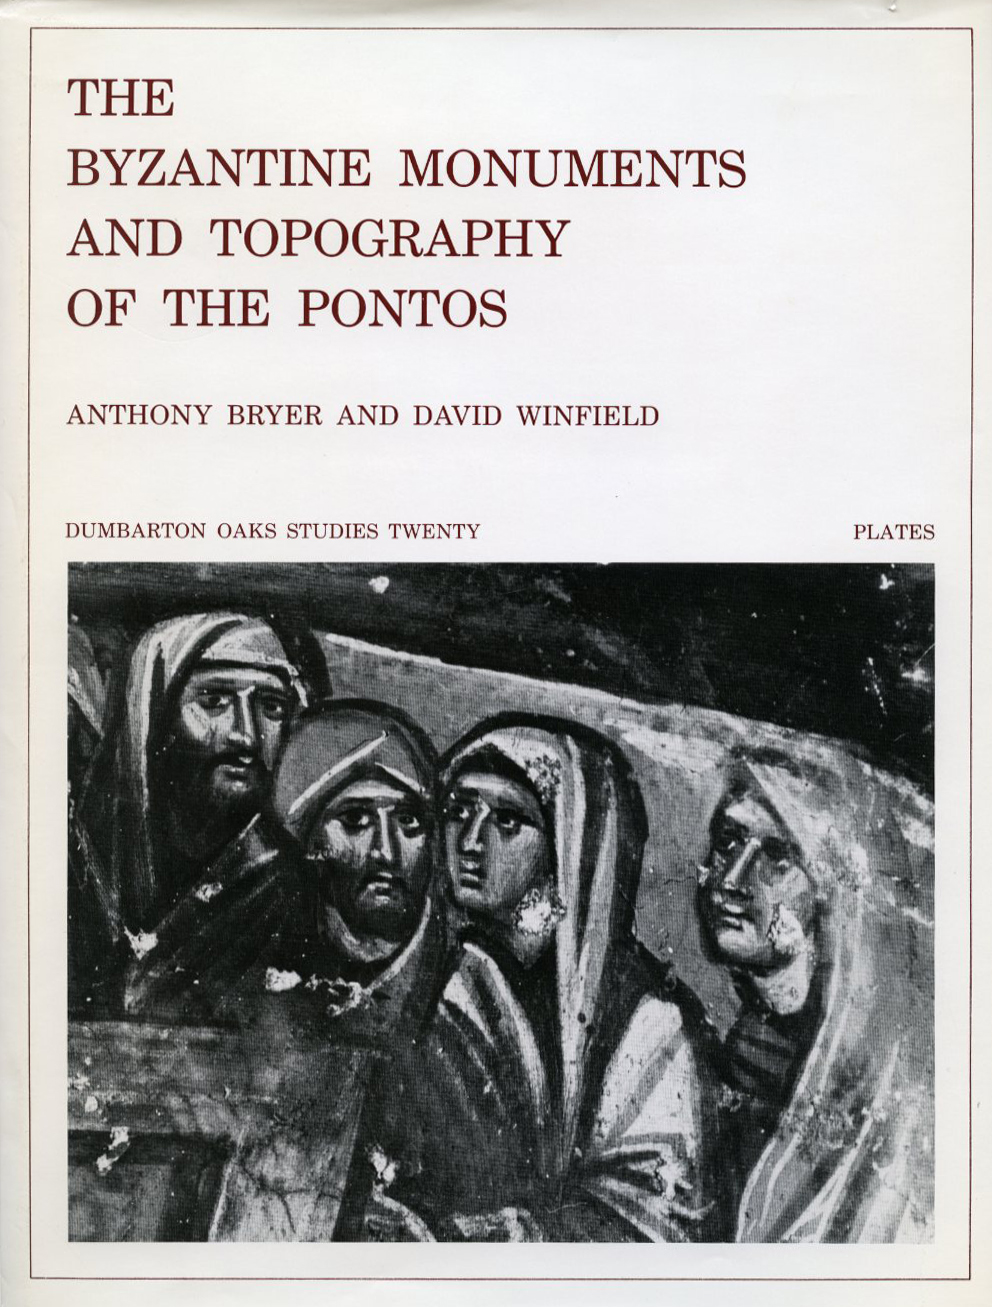 The Byzantine Monuments and Topography of the Pontos